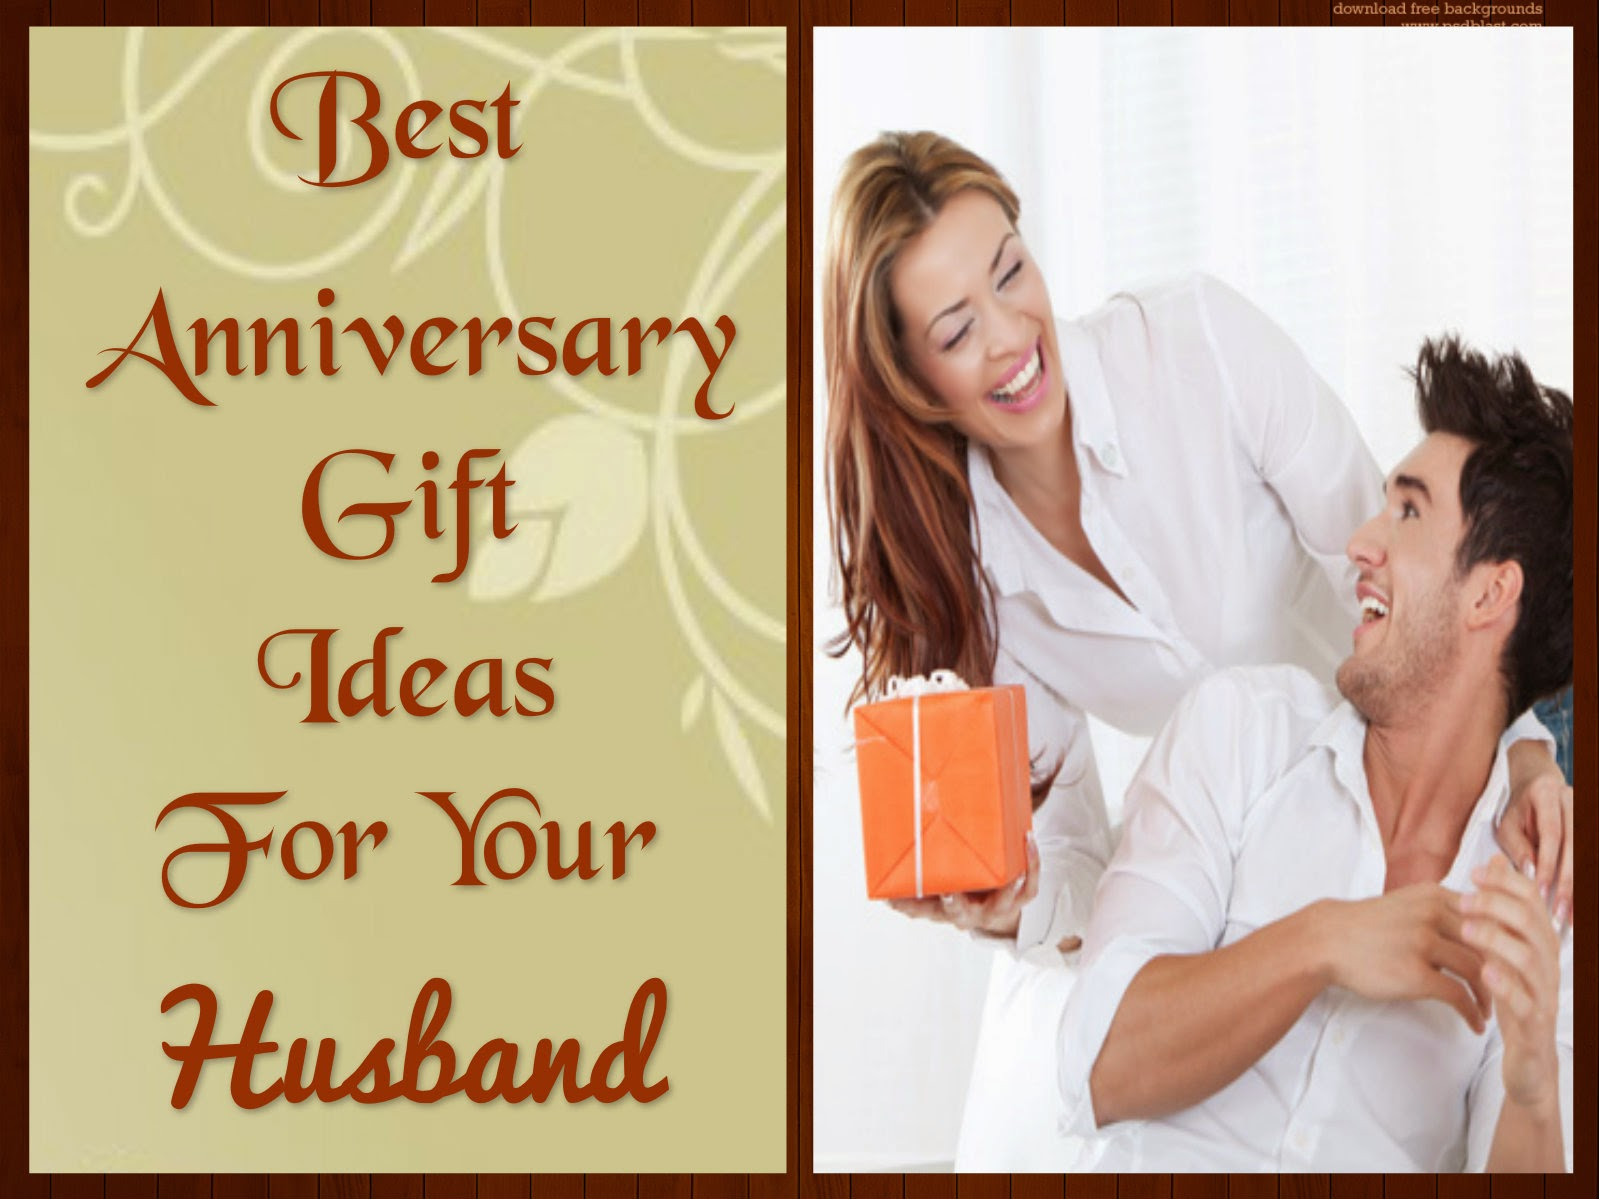 Wedding Anniversary Gifts For Husband Ideas: Wedding Anniversary Gifts: Best Anniversary Gift Ideas For